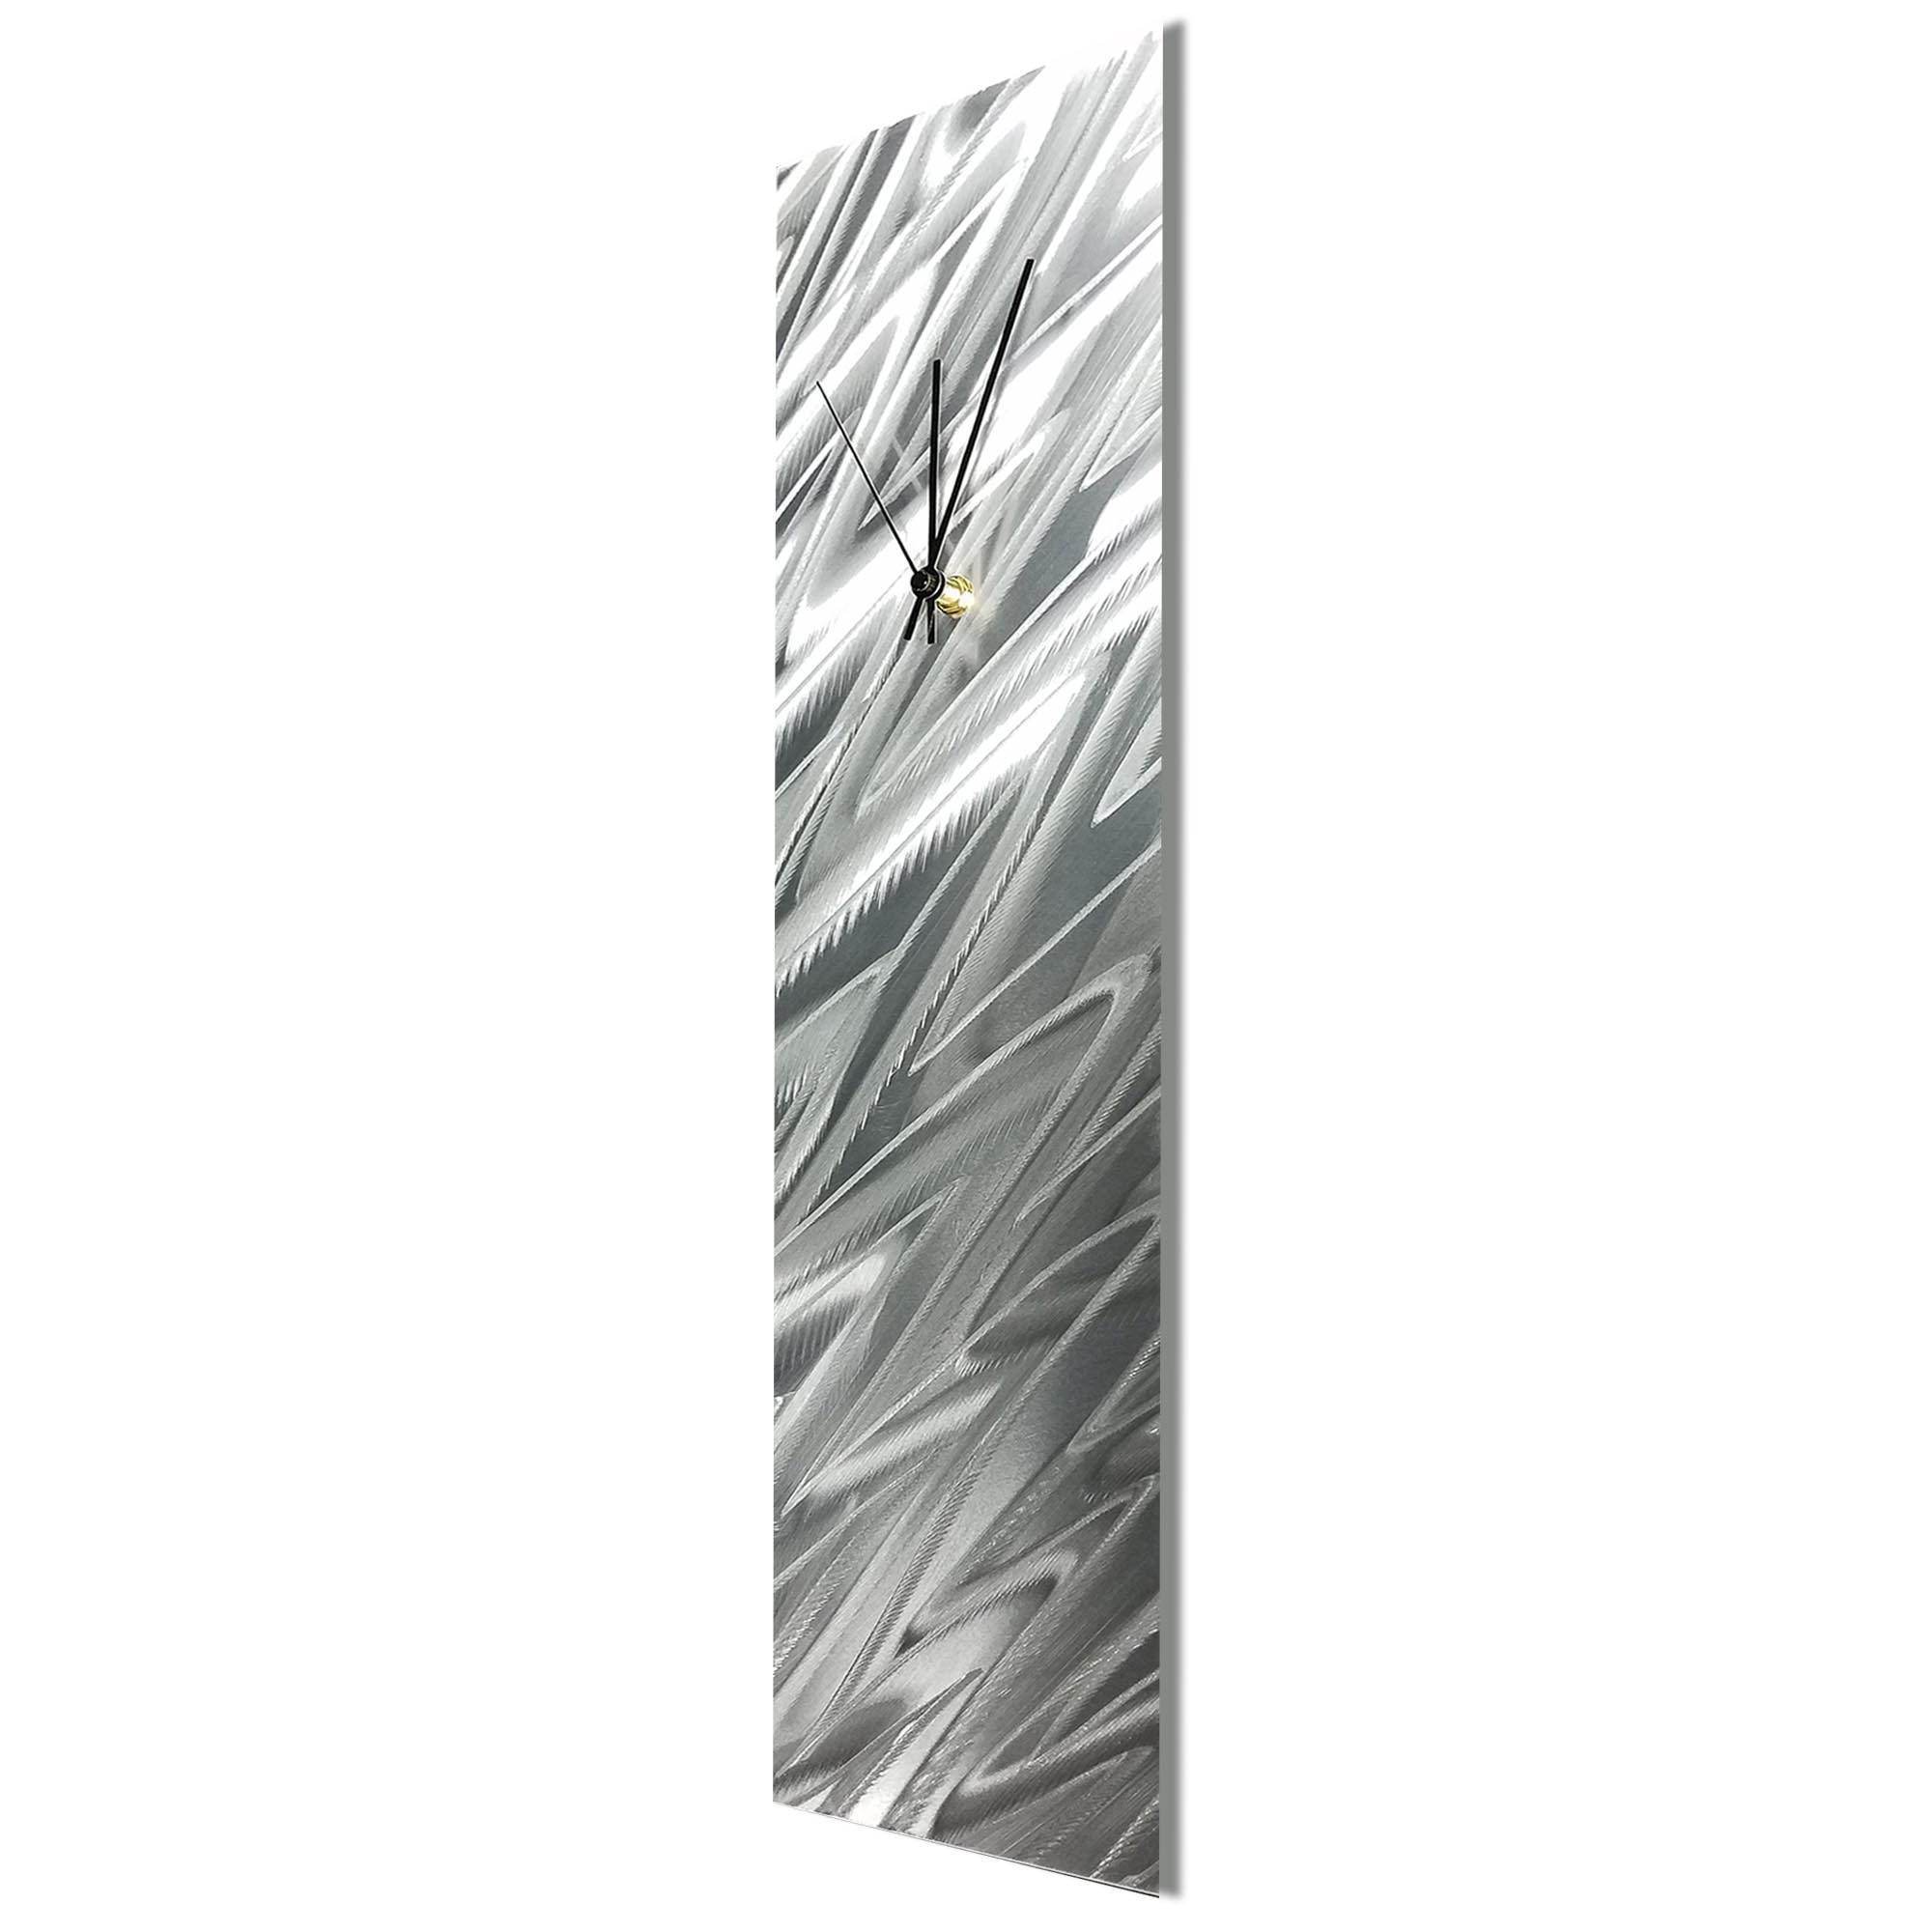 Silver Zig Zag Clock by Nate Halley Contemporary Wall Clock on Natural Aluminum - Image 2